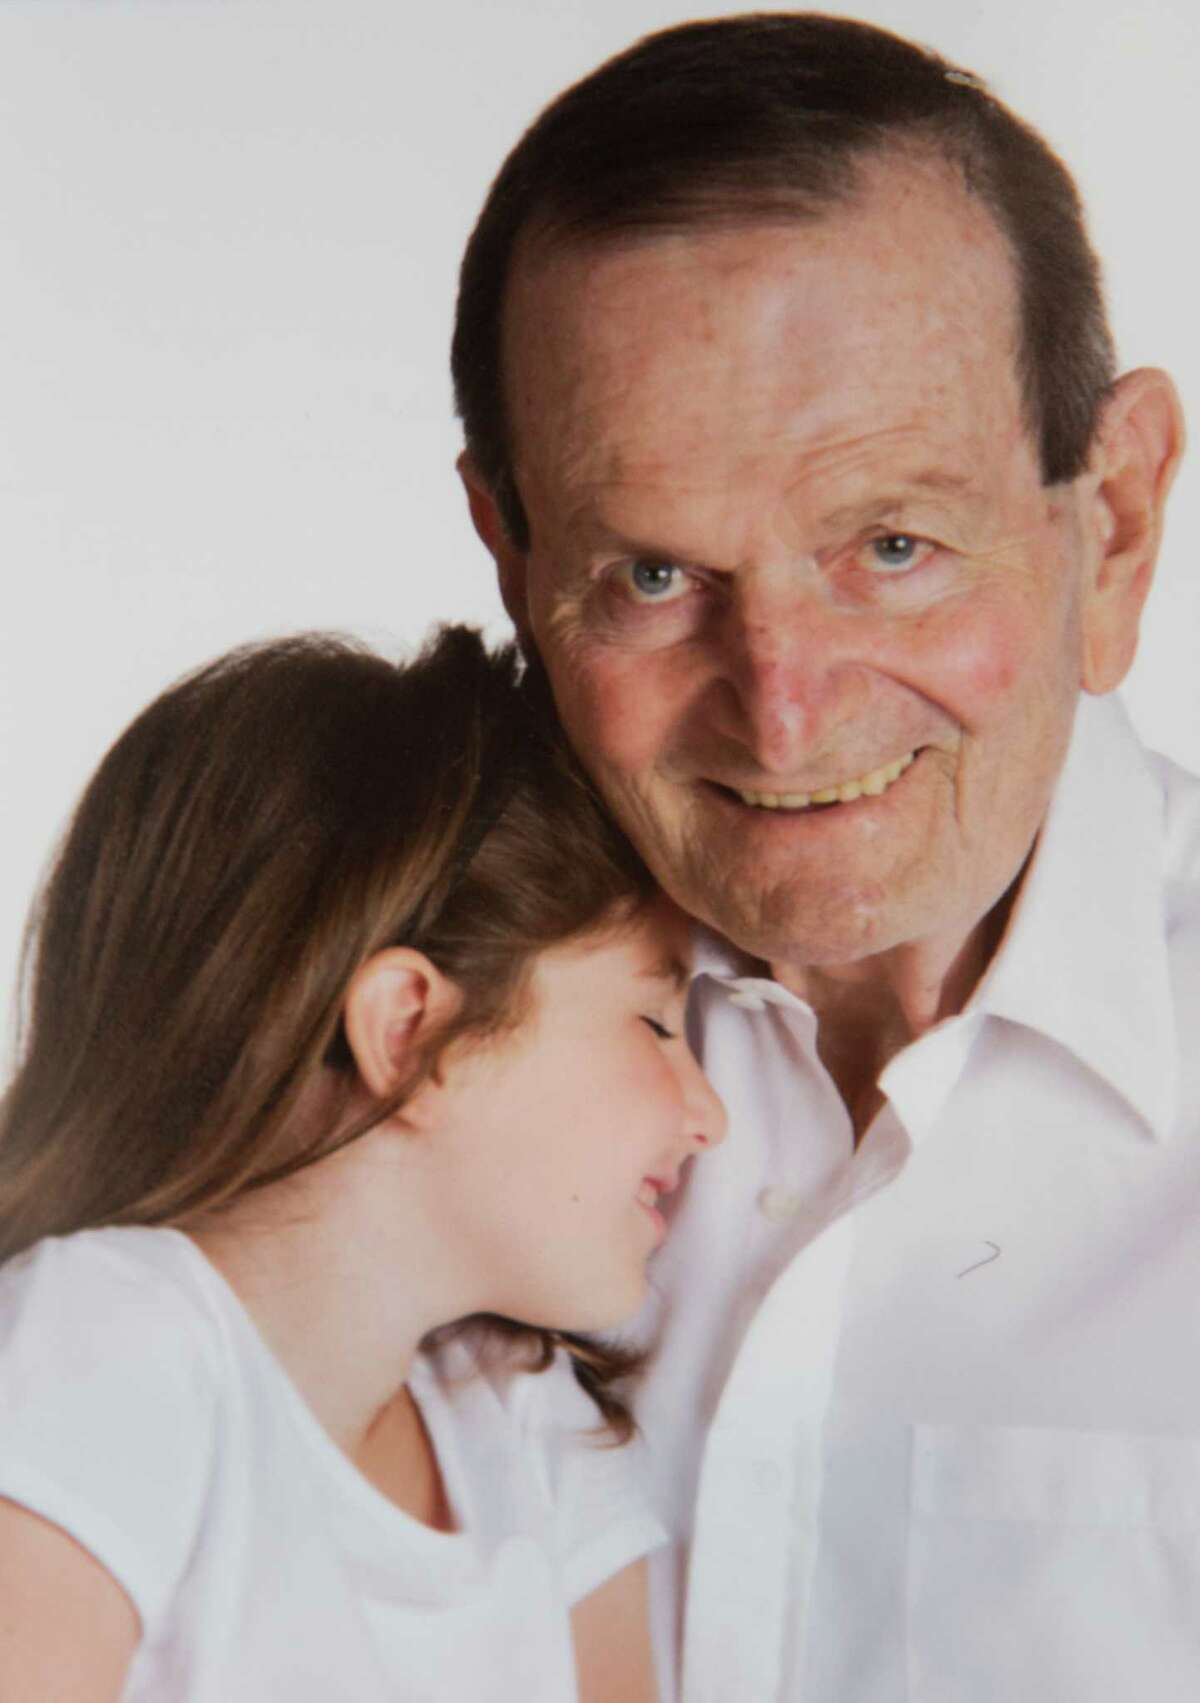 Morton J. Adels had a close relationship with his granddaughter Zoey.